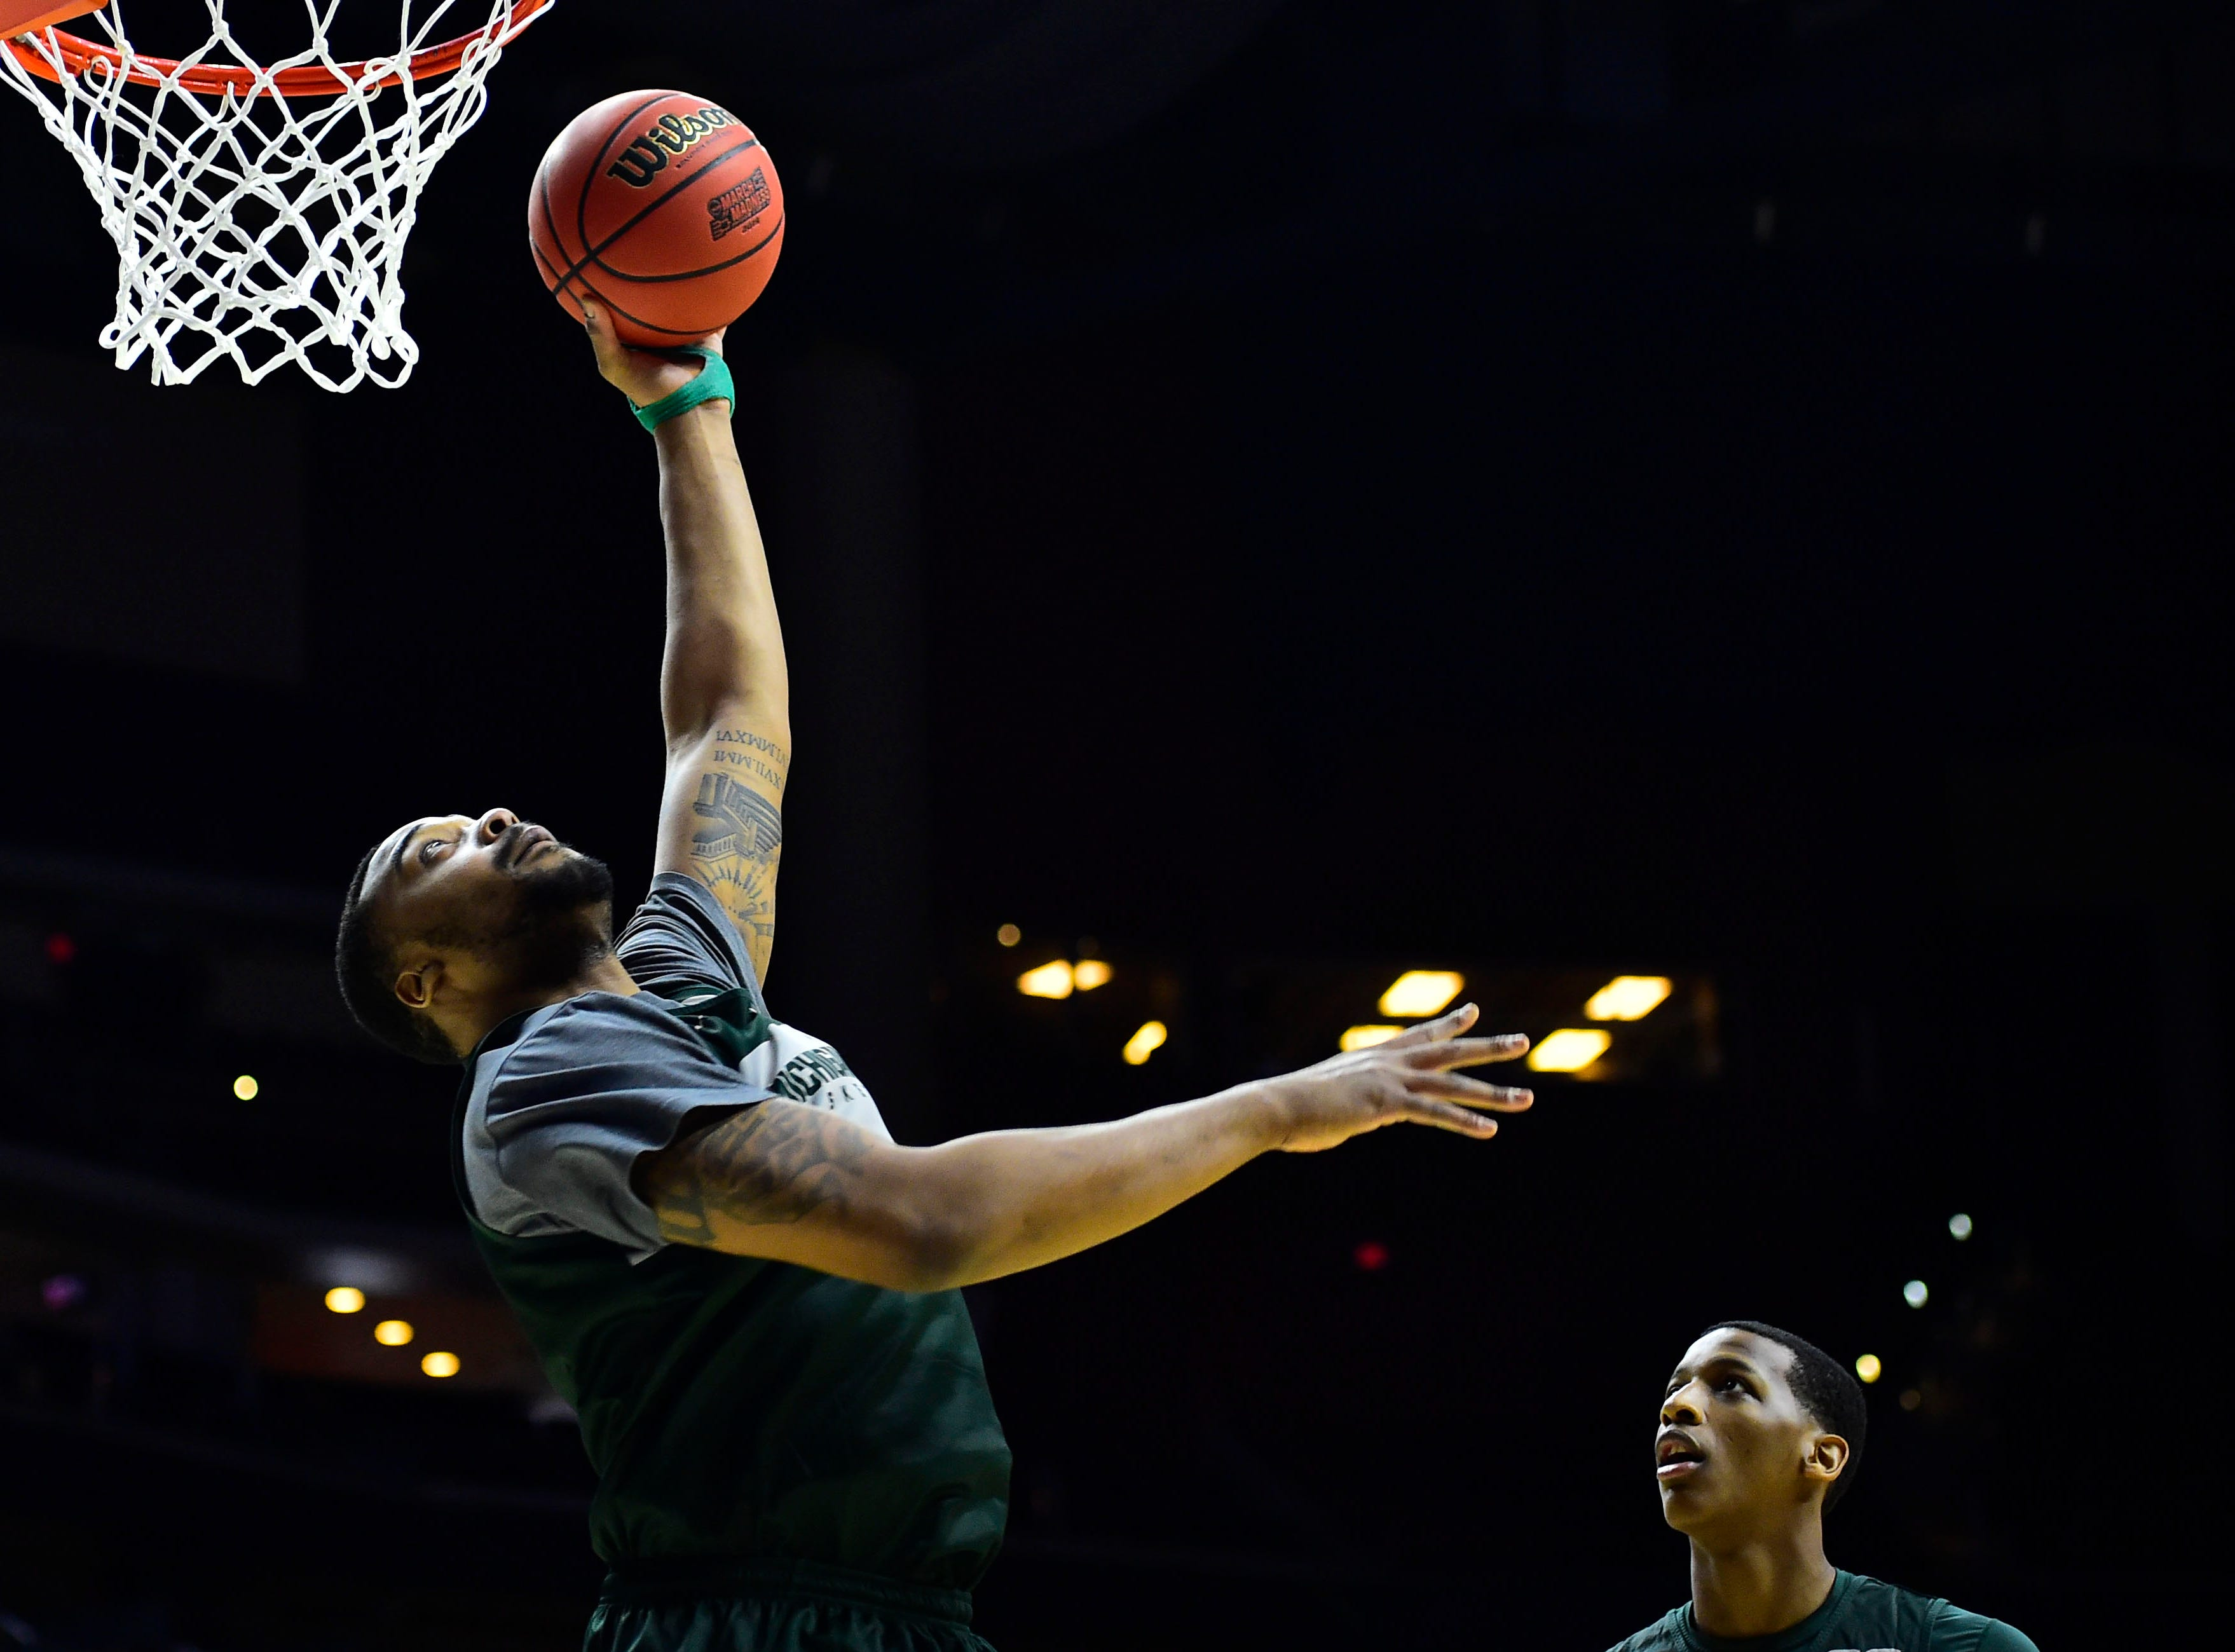 Mar 20, 2019; Des Moines, IA, USA; Michigan State Spartans forward Nick Ward (44) dunks the ball during practice before the first round of the 2019 NCAA Tournament at Wells Fargo Arena. Mandatory Credit: Jeffery Becker-USA TODAY Sports